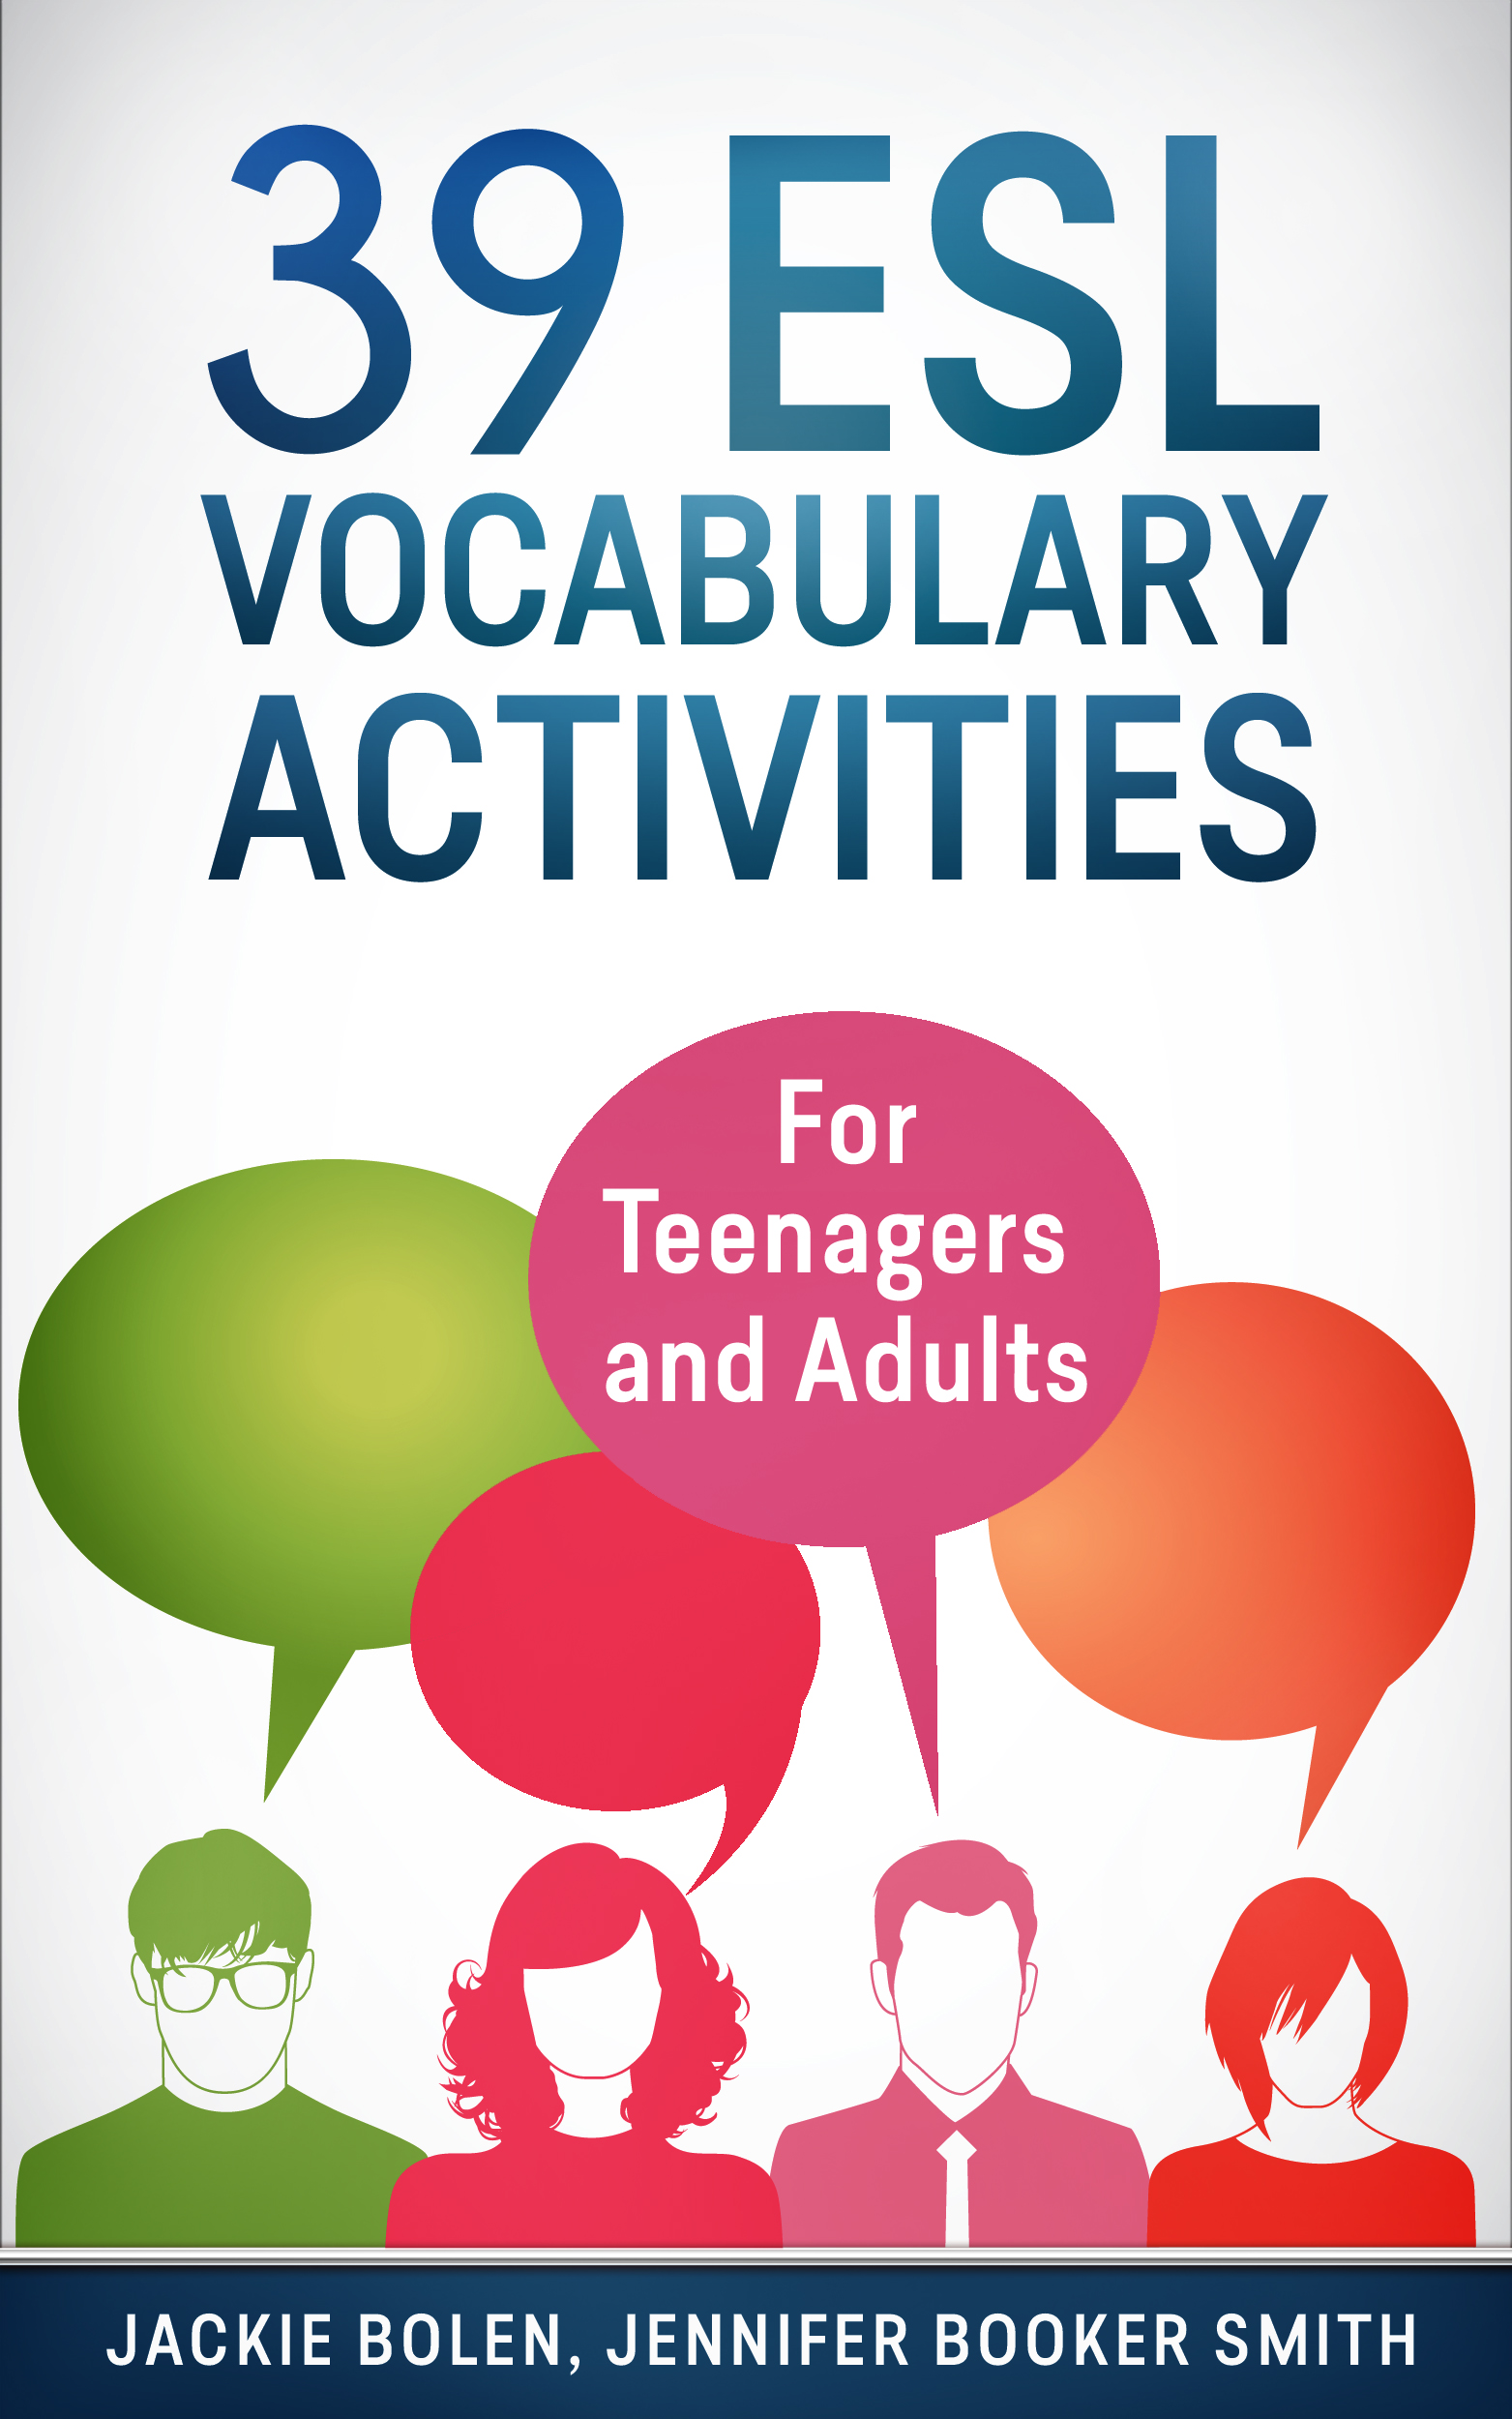 Esl Vocabulary Activities For Teenagers And Adults